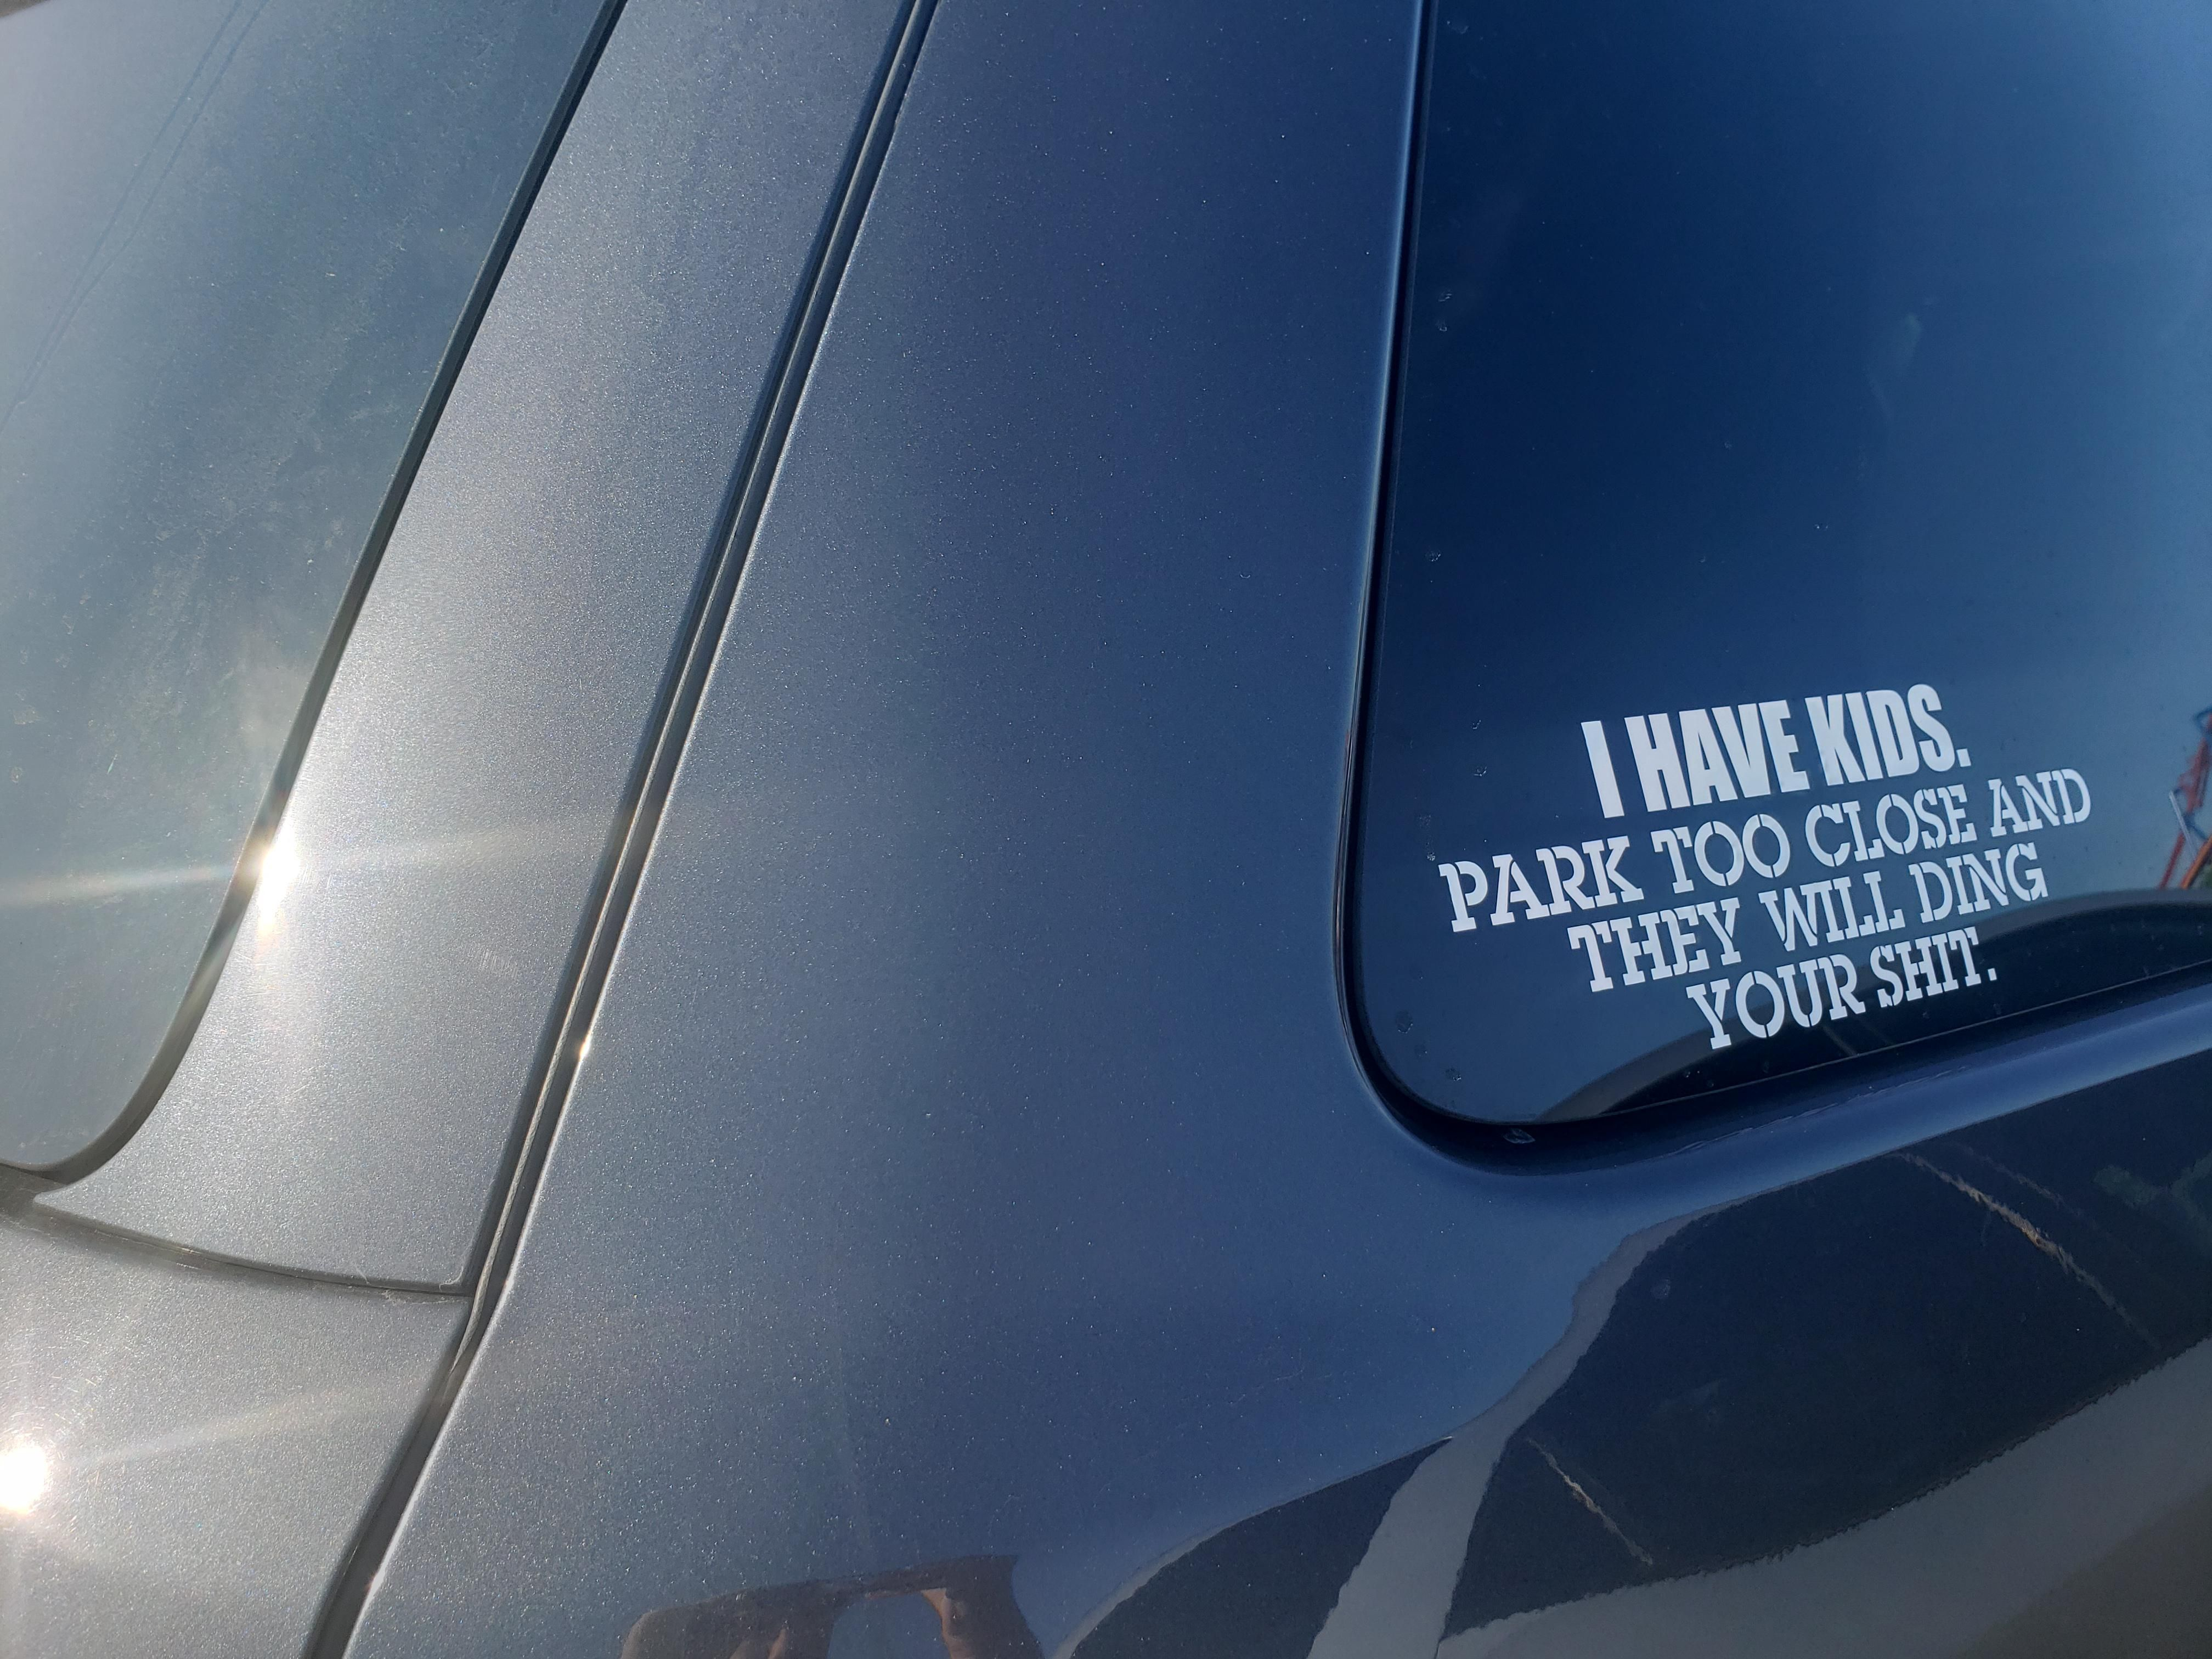 Saw this on the car I was parked next to.